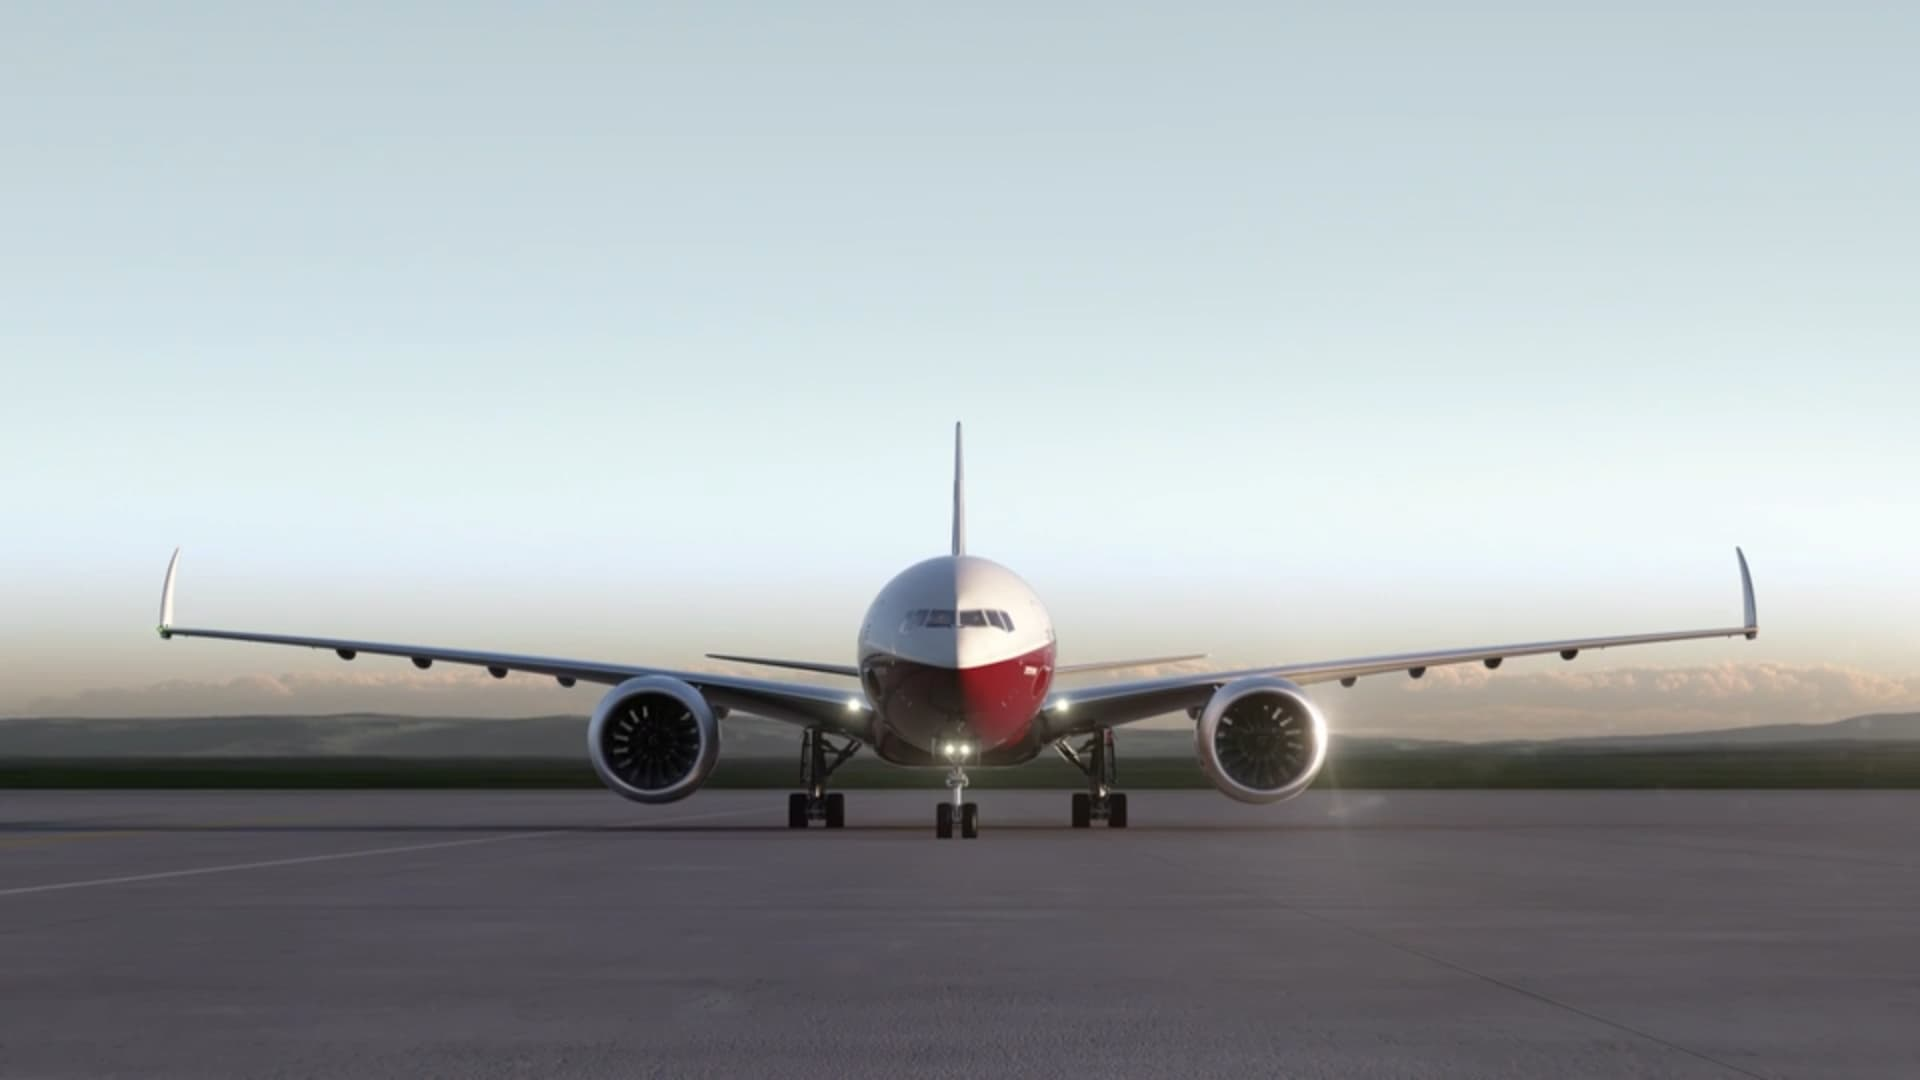 Boeing's new 777s will have folding wings